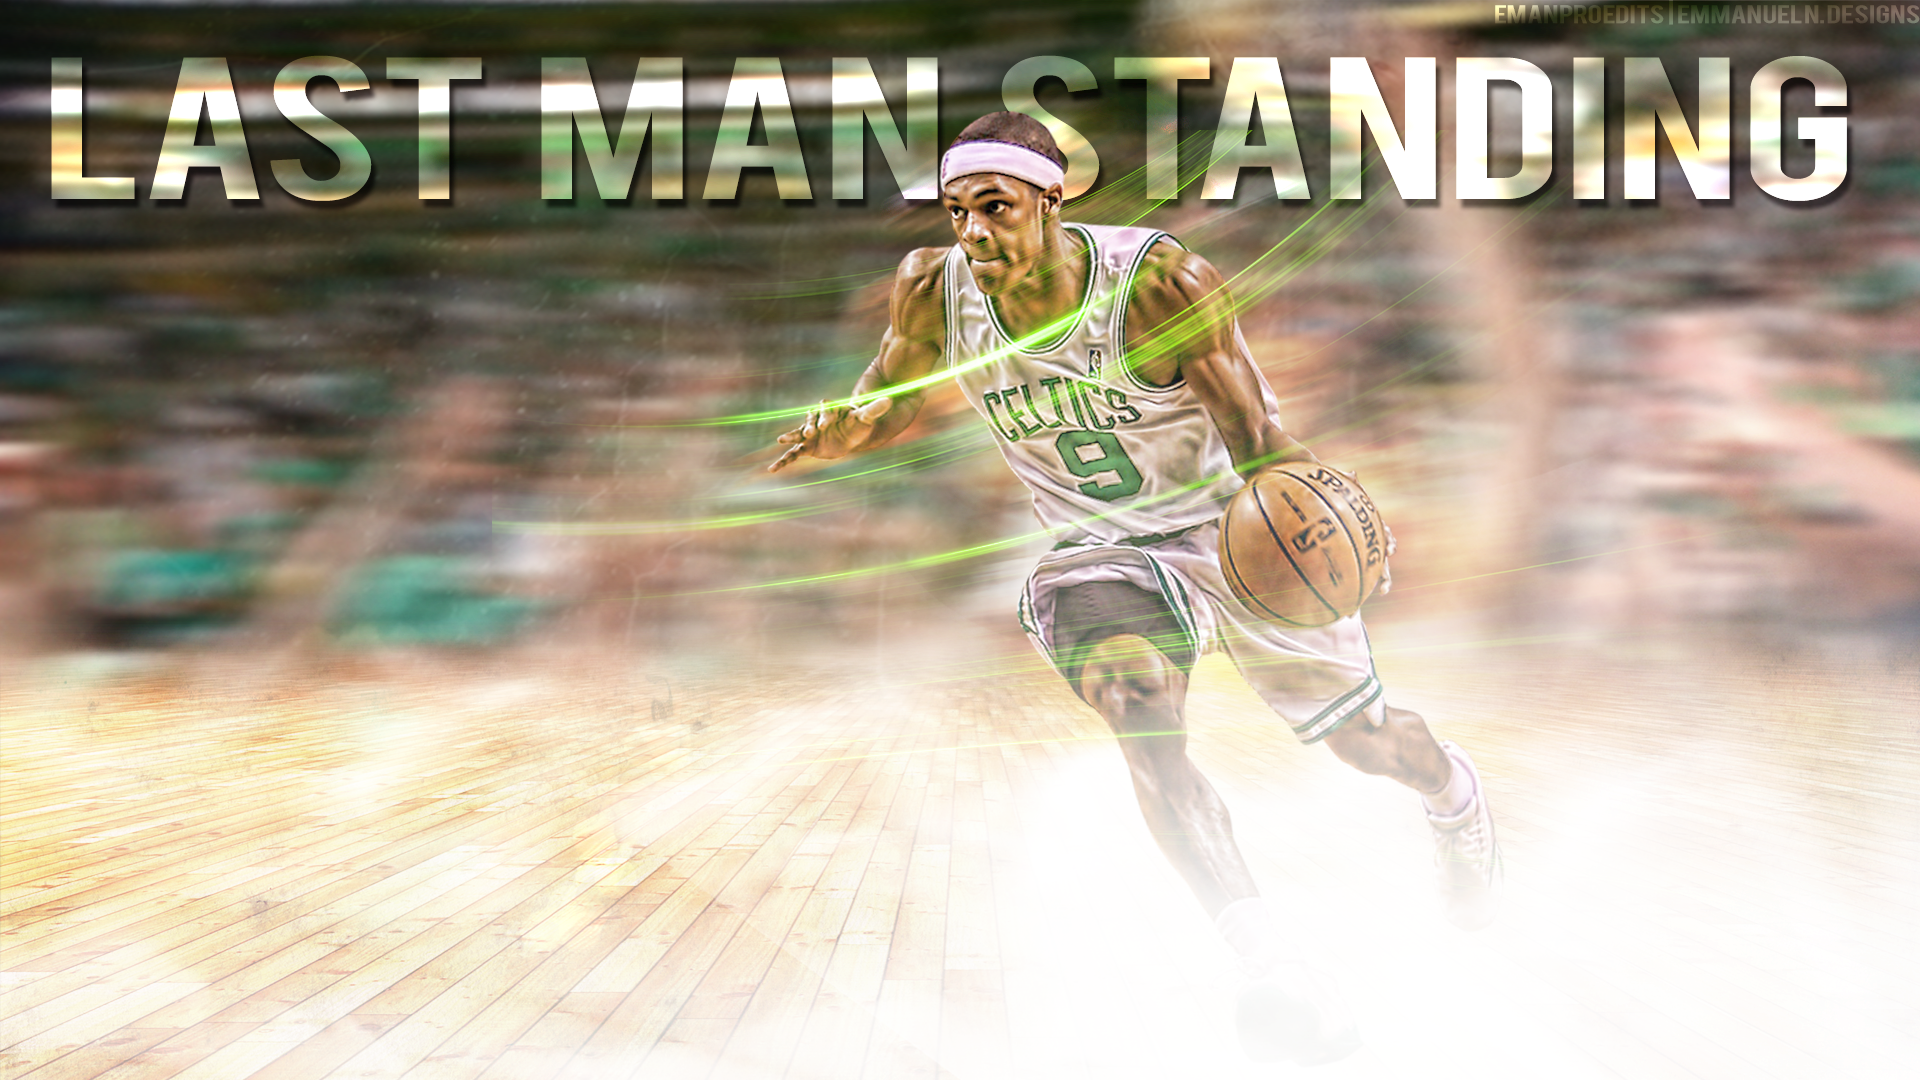 Rajon Rondo Wallpaper By Emanproedits On DeviantArt